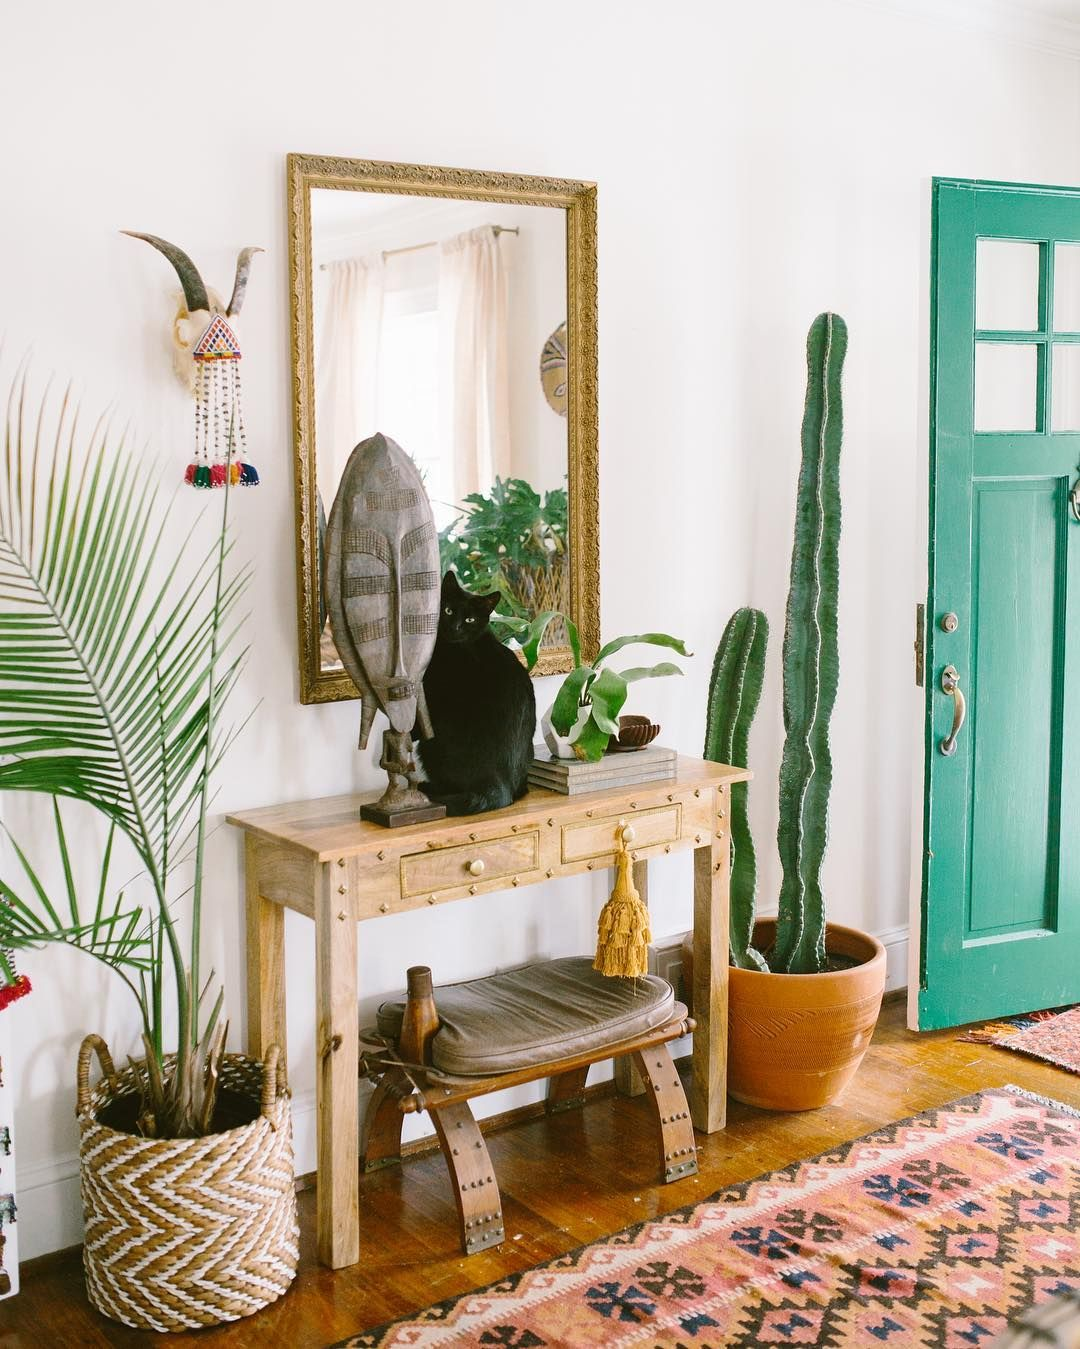 Best Place For Home Decor: Best 25+ Southwestern Boho Decor Ideas On Pinterest